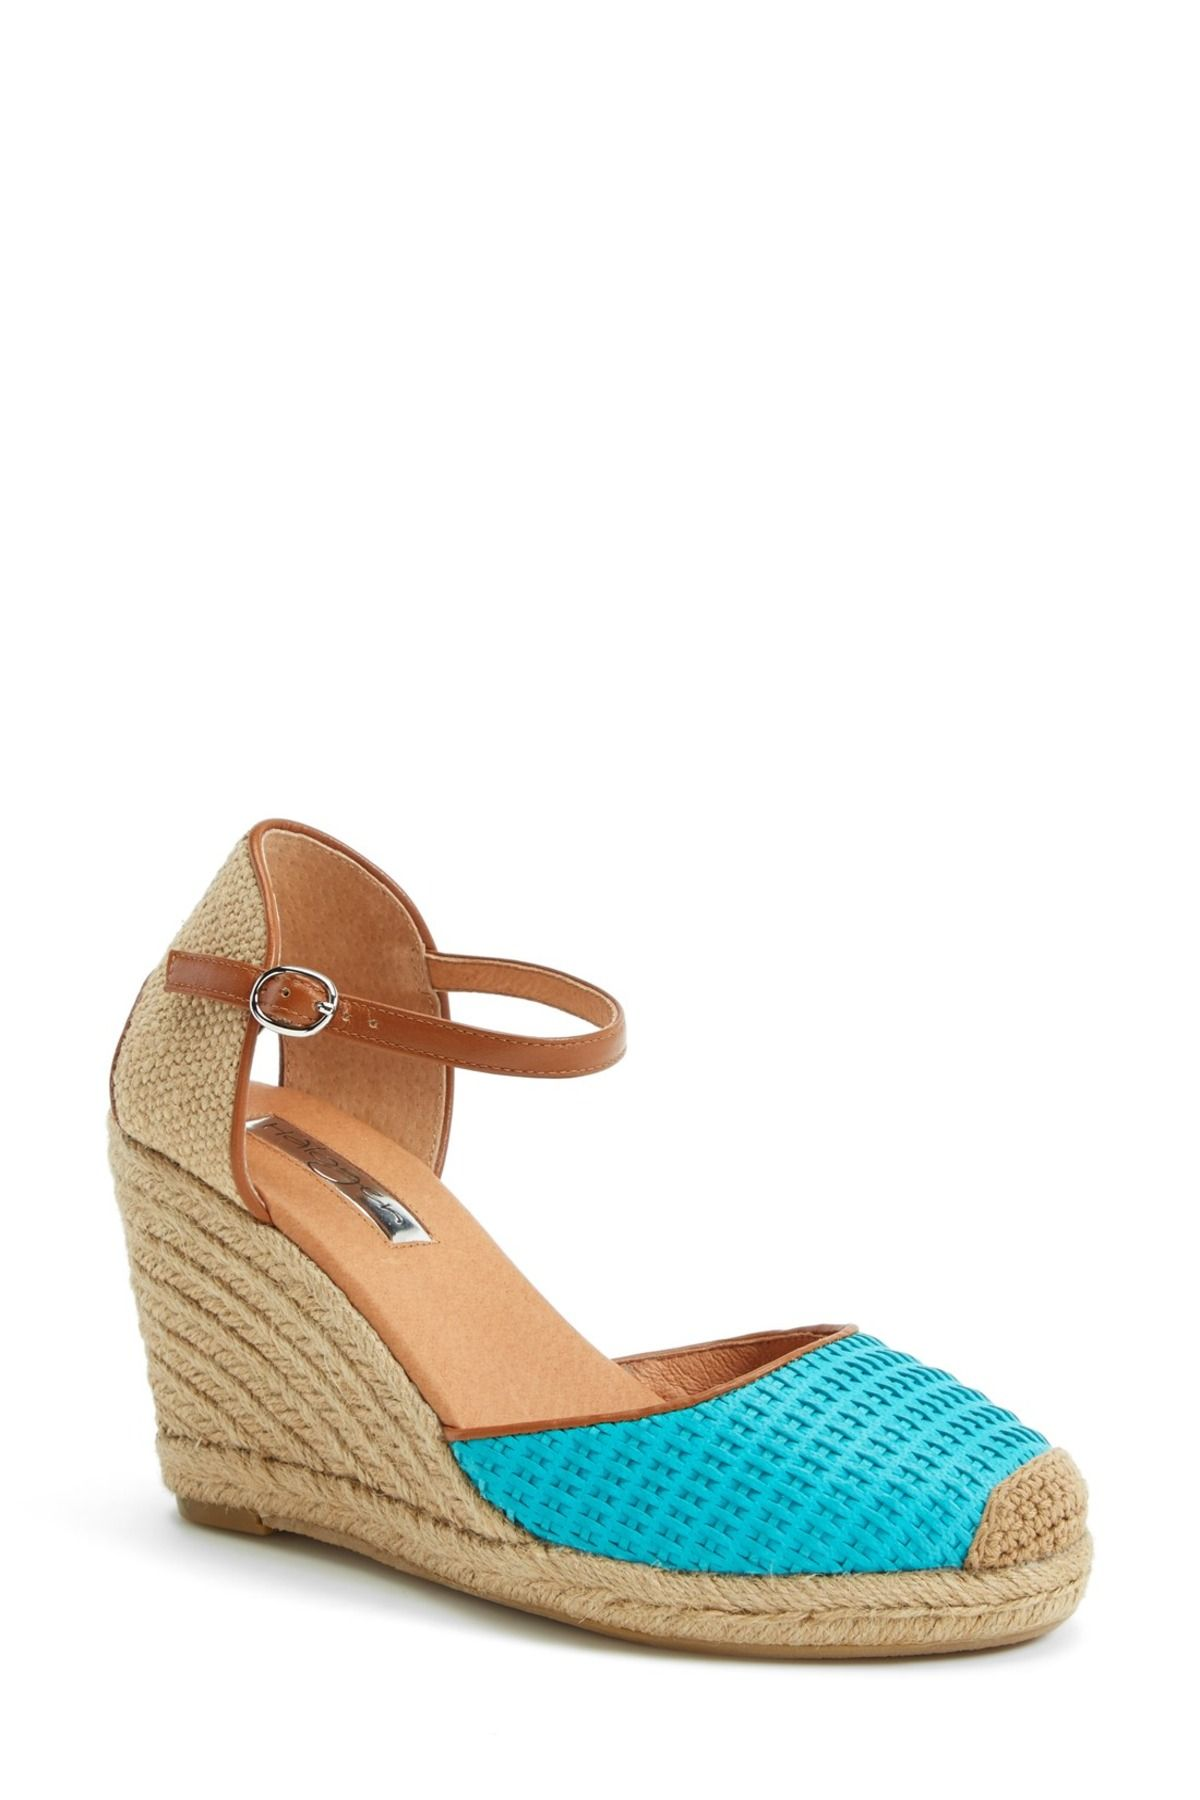 cdf1e33388ac Halogen - Sandra Wedge Espadrille at Nordstrom Rack. Free Shipping on  orders over  100.